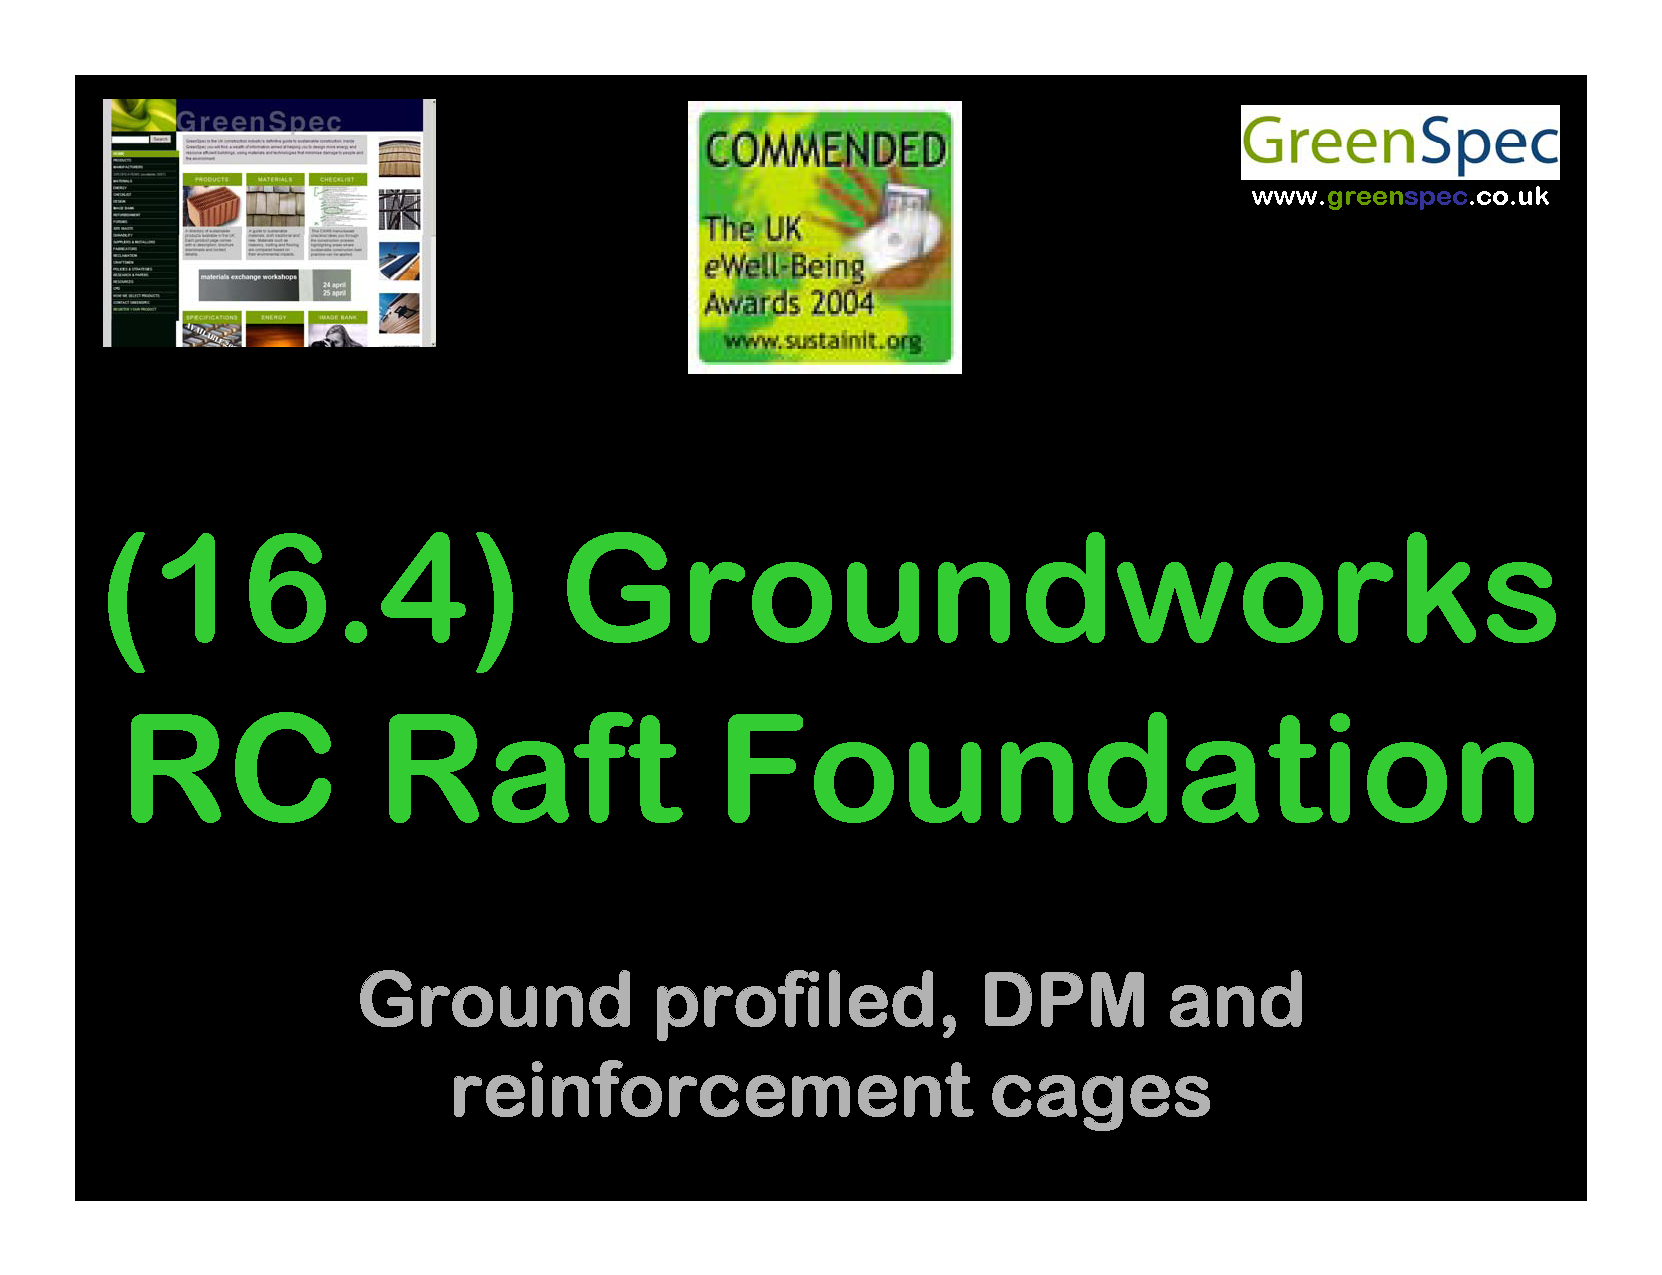 16.4GroundworksRCRaftFound_Page_1.png